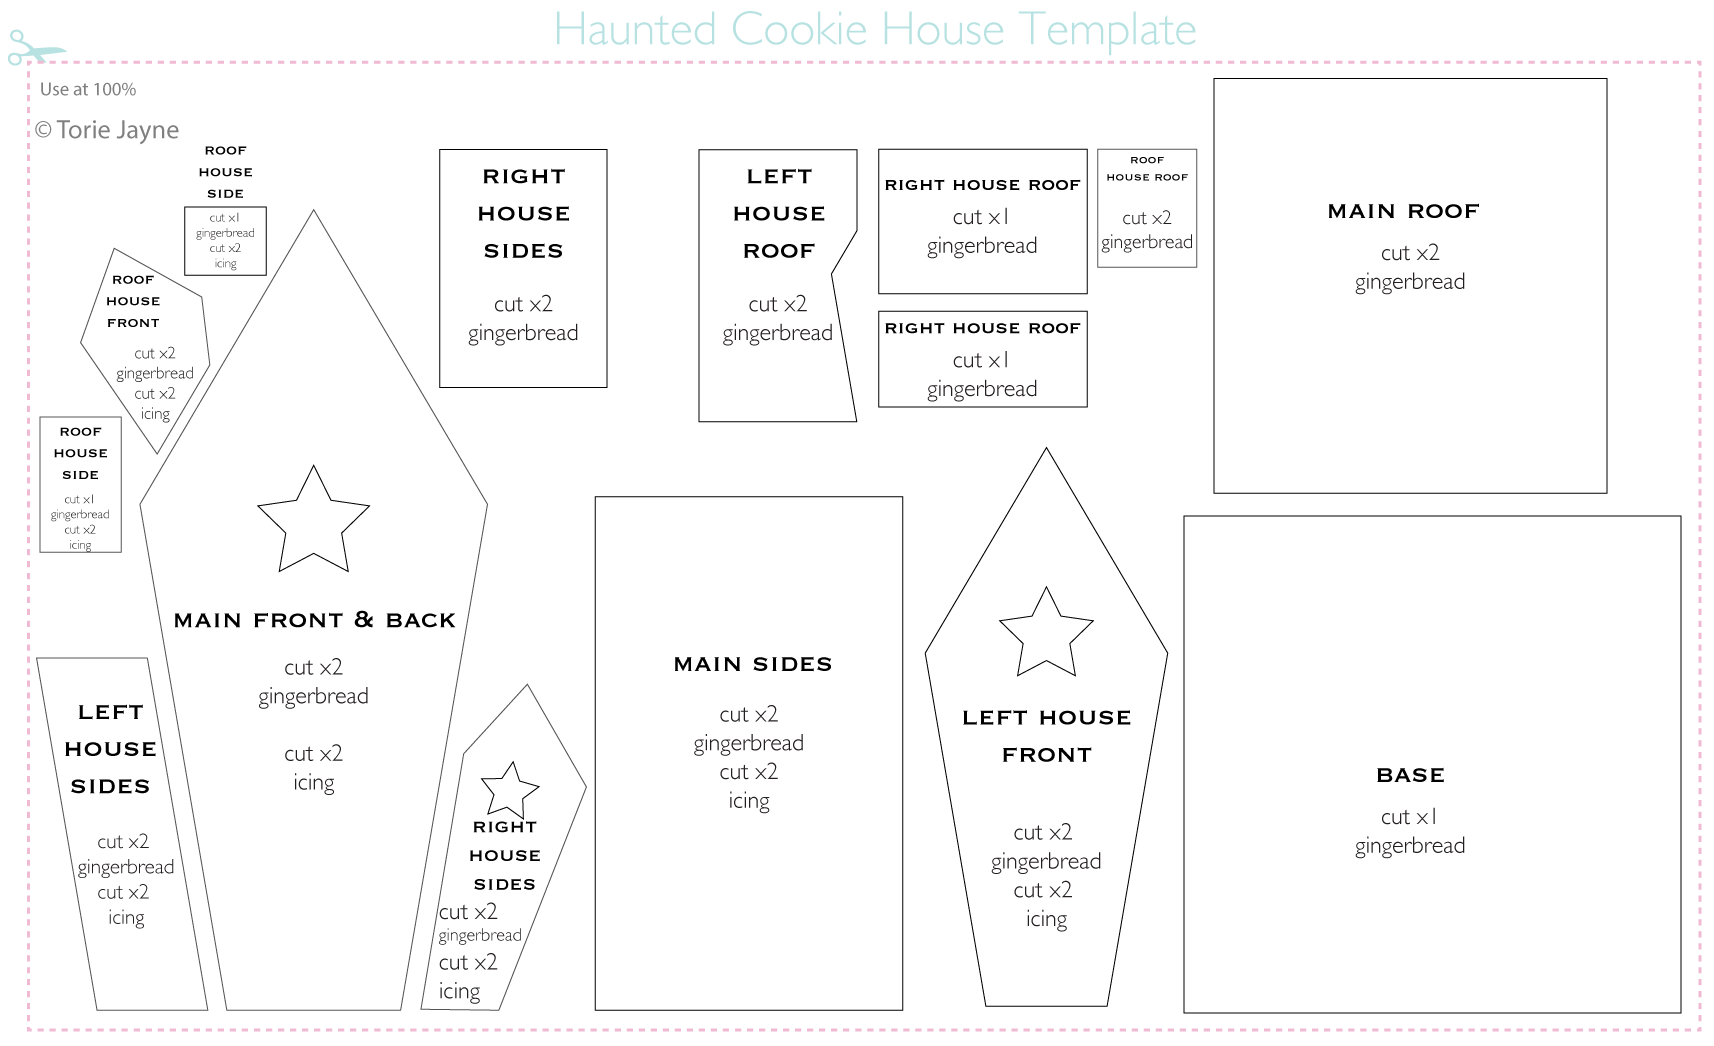 Haunted cookie house template Gingerbread house template